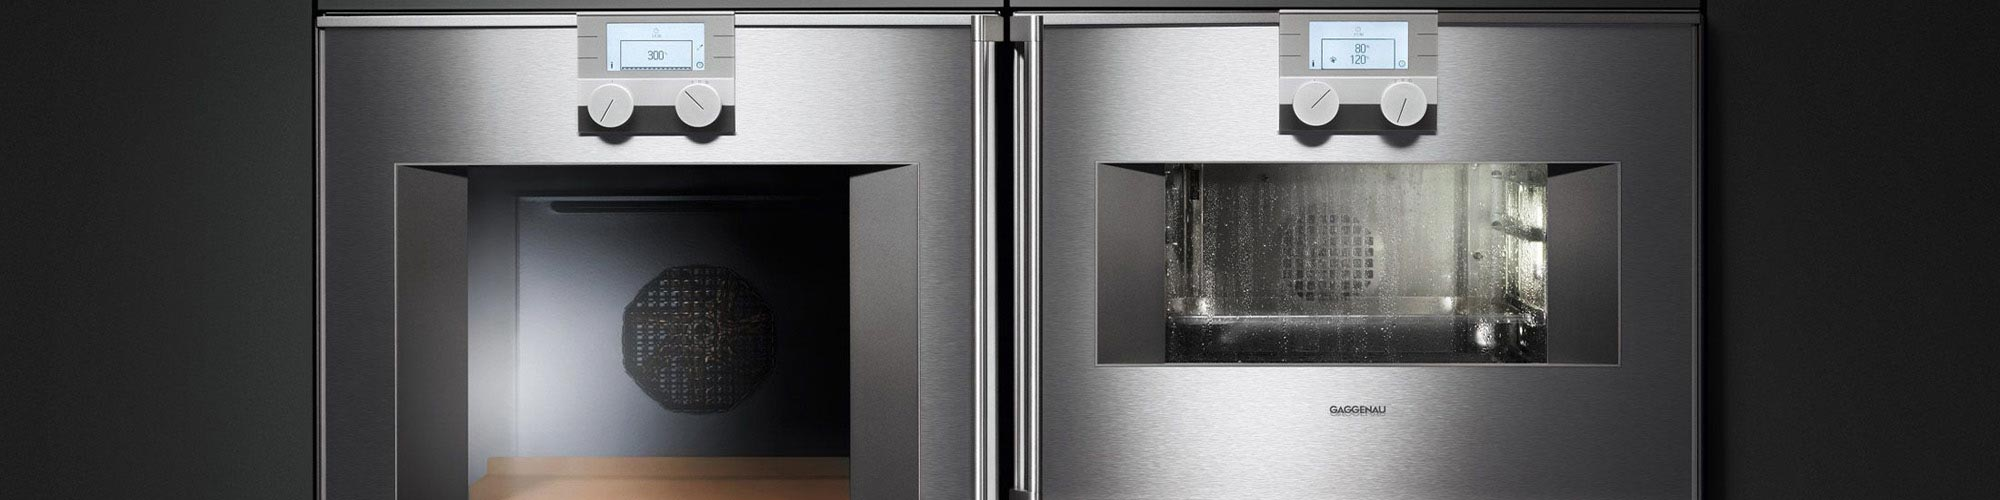 Microwave Ovens by FCI London